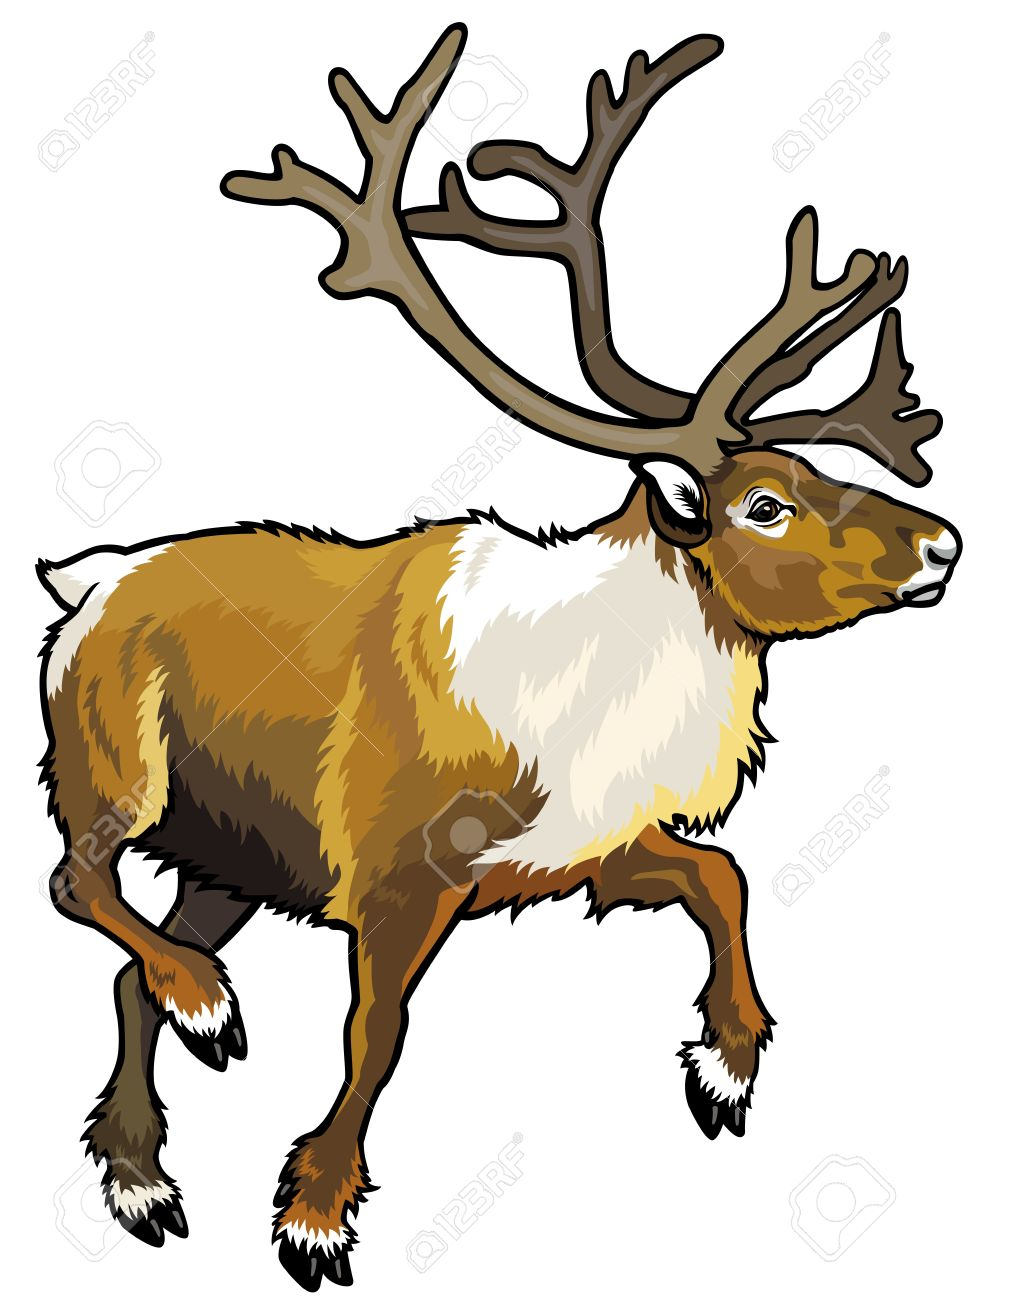 Caribou clipart #10, Download drawings